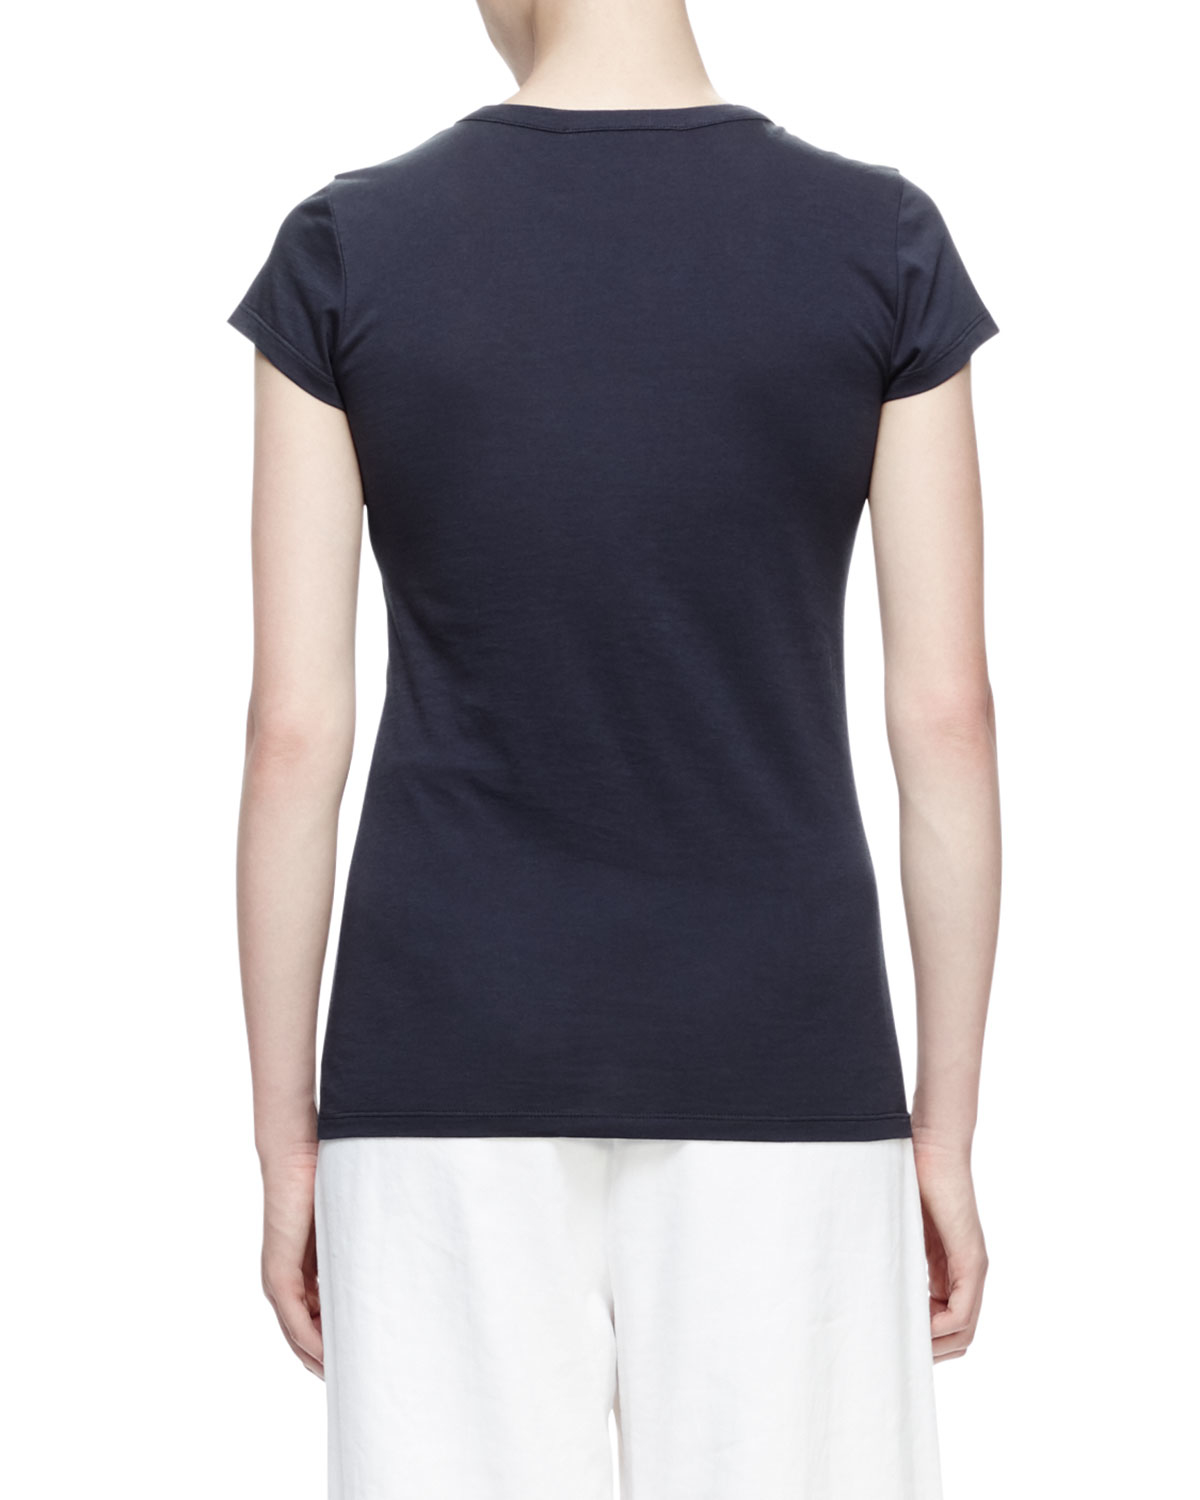 Stella mccartney patches short sleeve t shirt in blue lyst for Stella mccartney t shirt